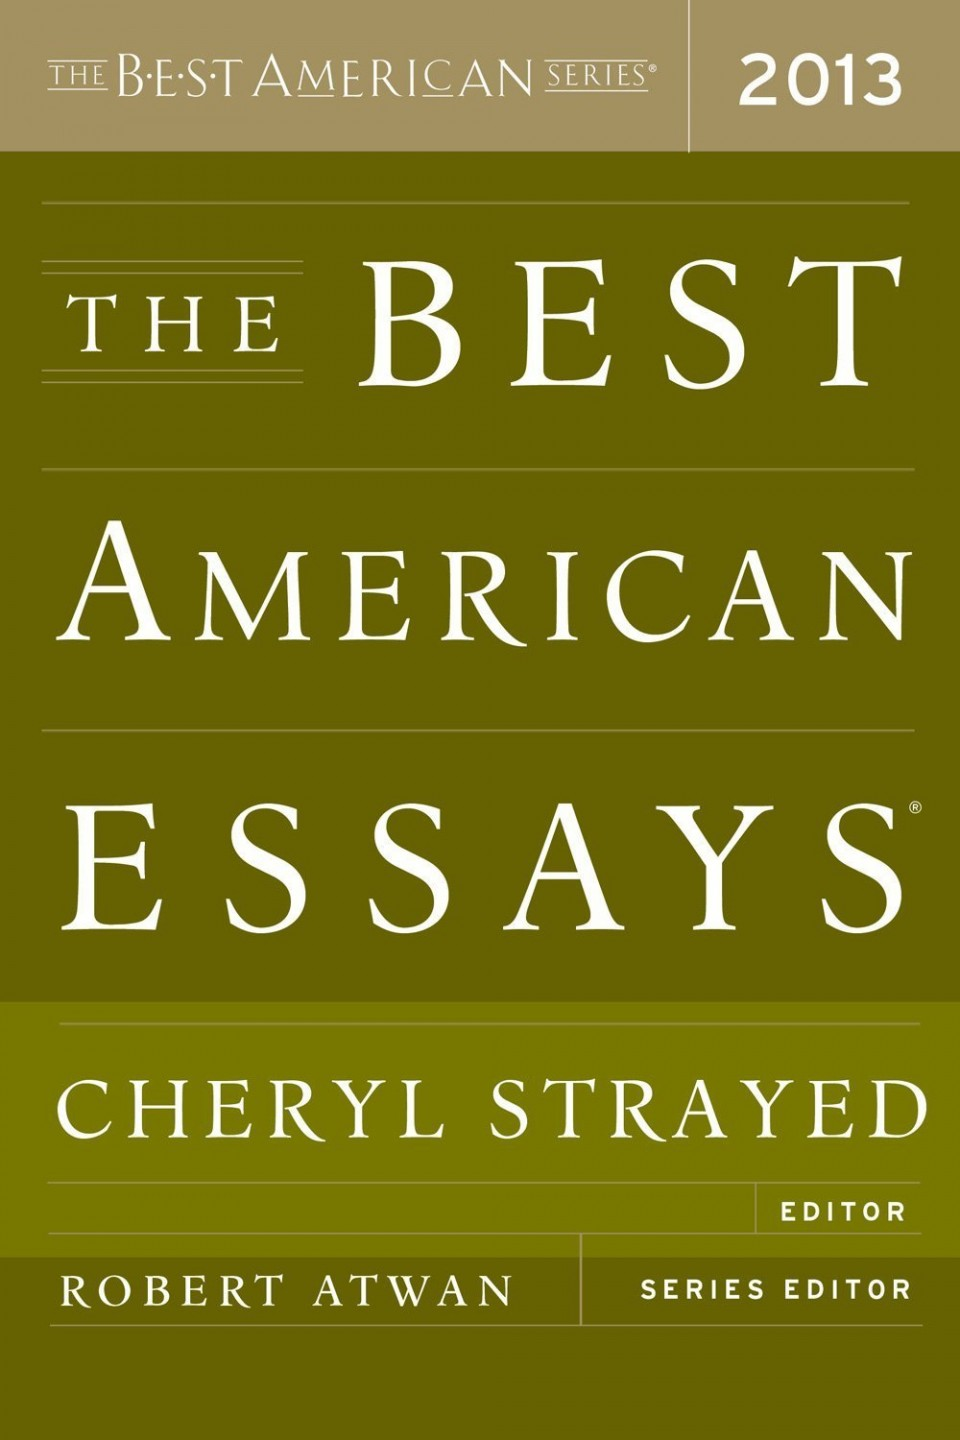 004 The Best American Essays Essay Wonderful 2013 Pdf Download Of Century Sparknotes 2017 960